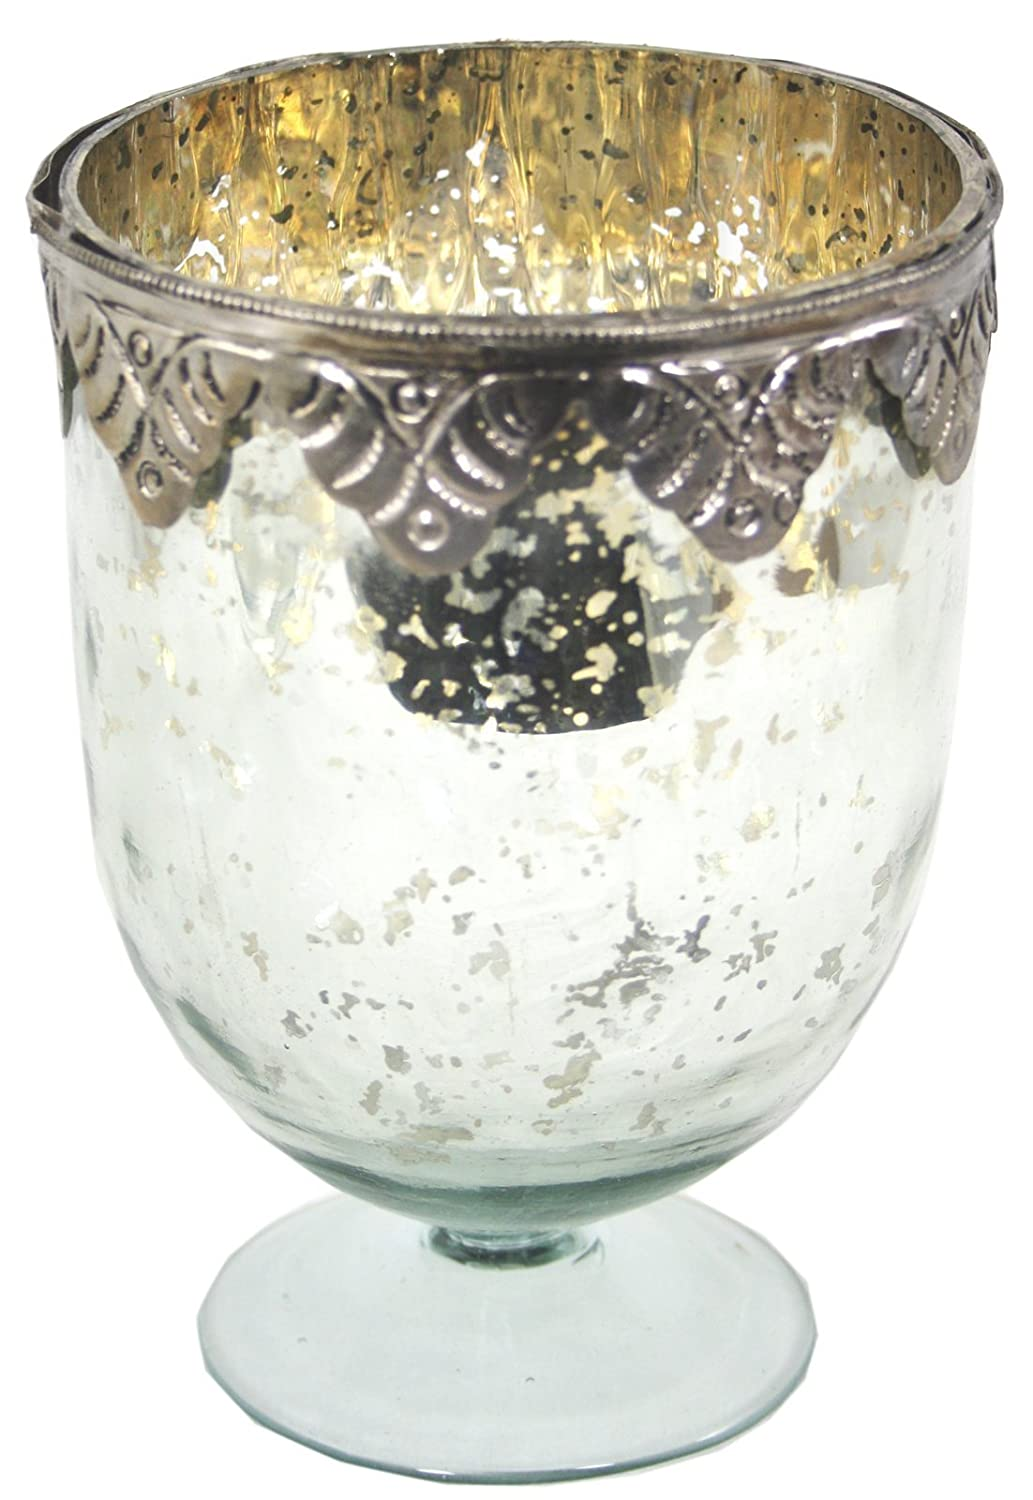 marymarygardens Glass And Metal Candle Holder With A Distressed Silver Decoration